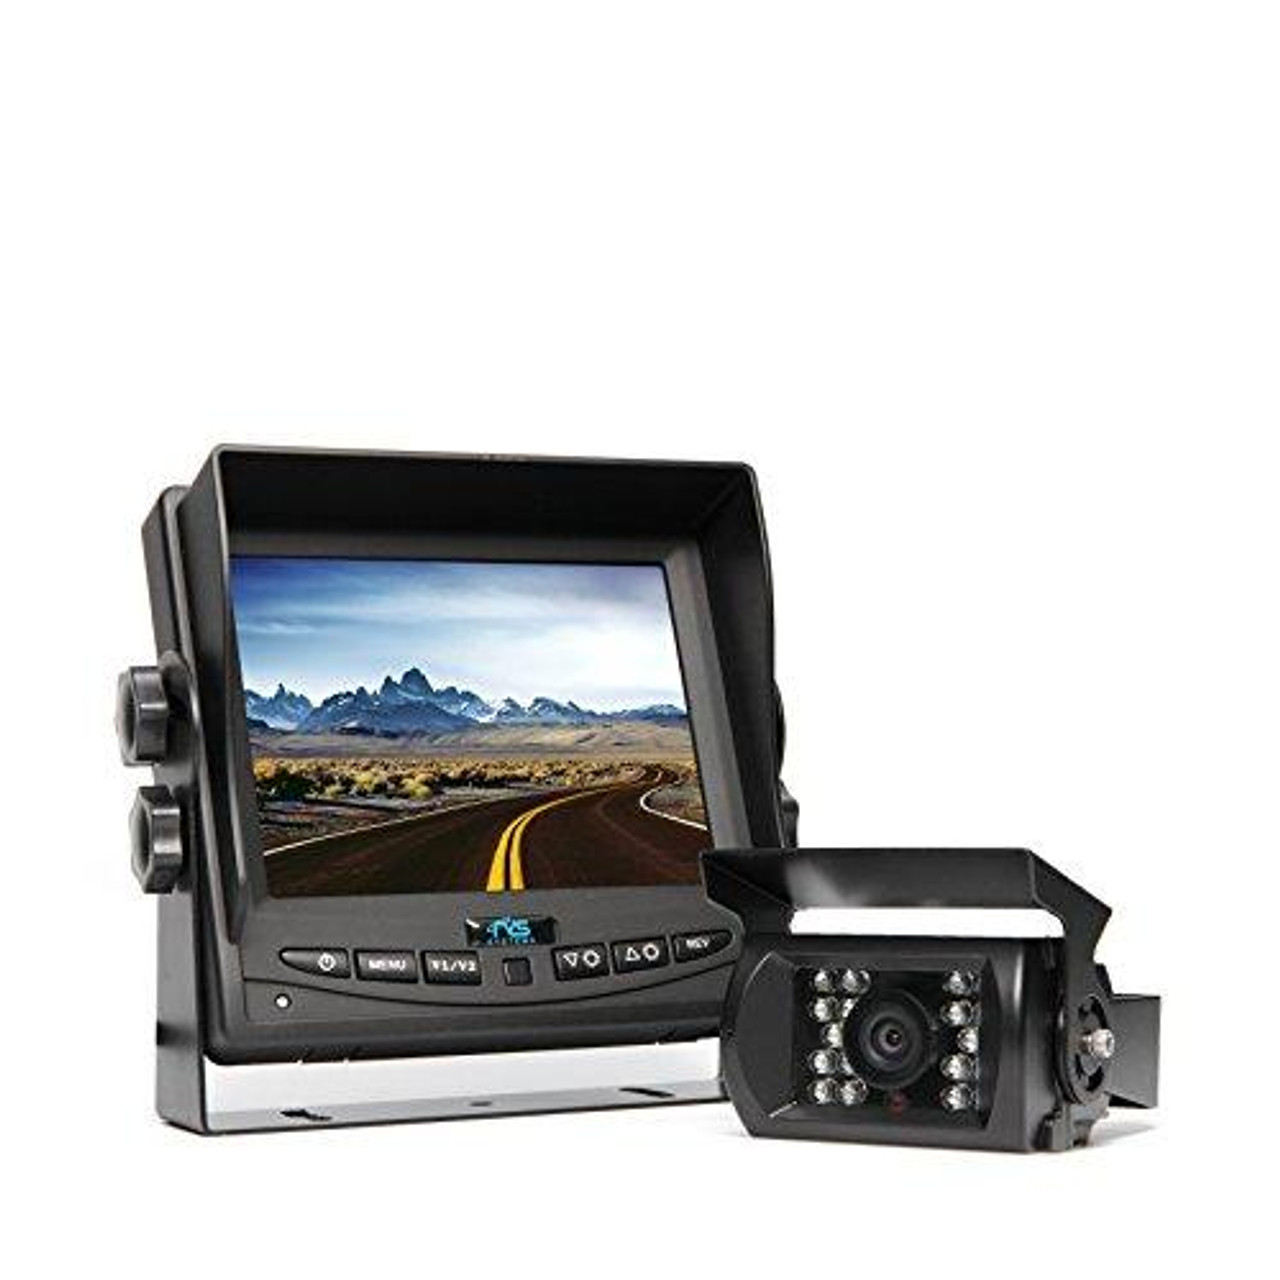 """Backup Camera System with 5"""" Monitor (RVS-7706033)"""